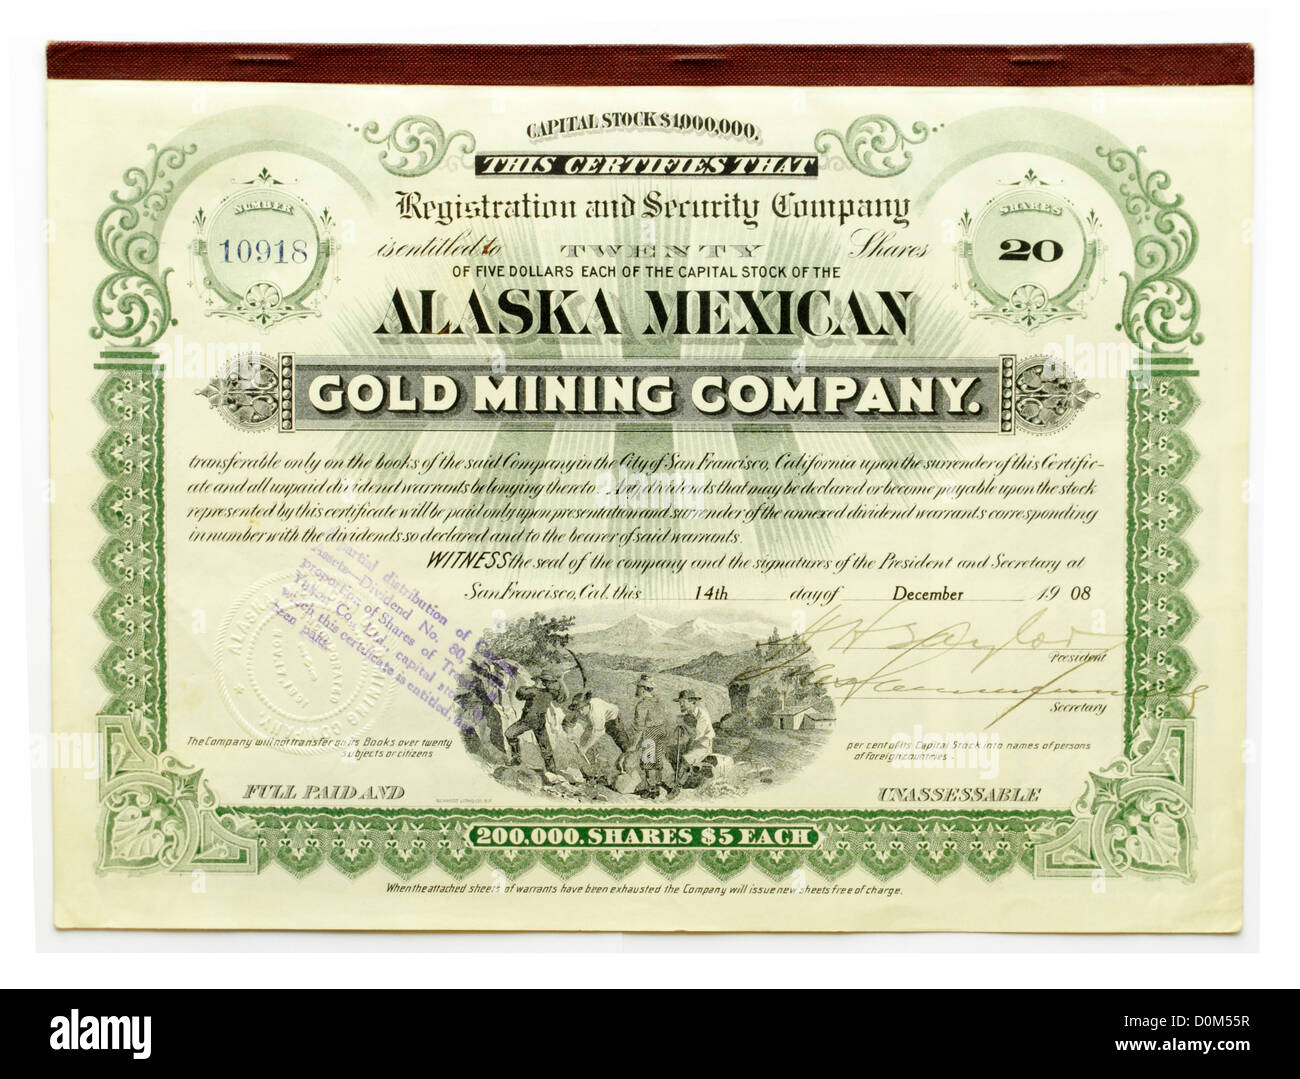 Share certificate of the alaska mexican gold mining for Free share certificate template bc